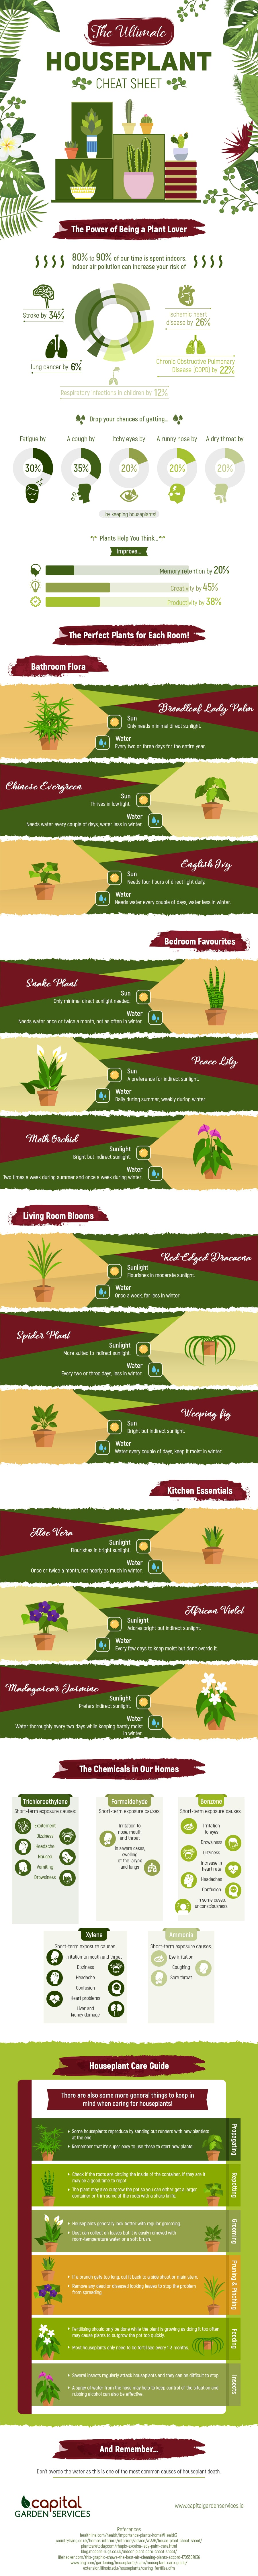 Best Indoor Houseplants: A Room-wise Guide - Infographic